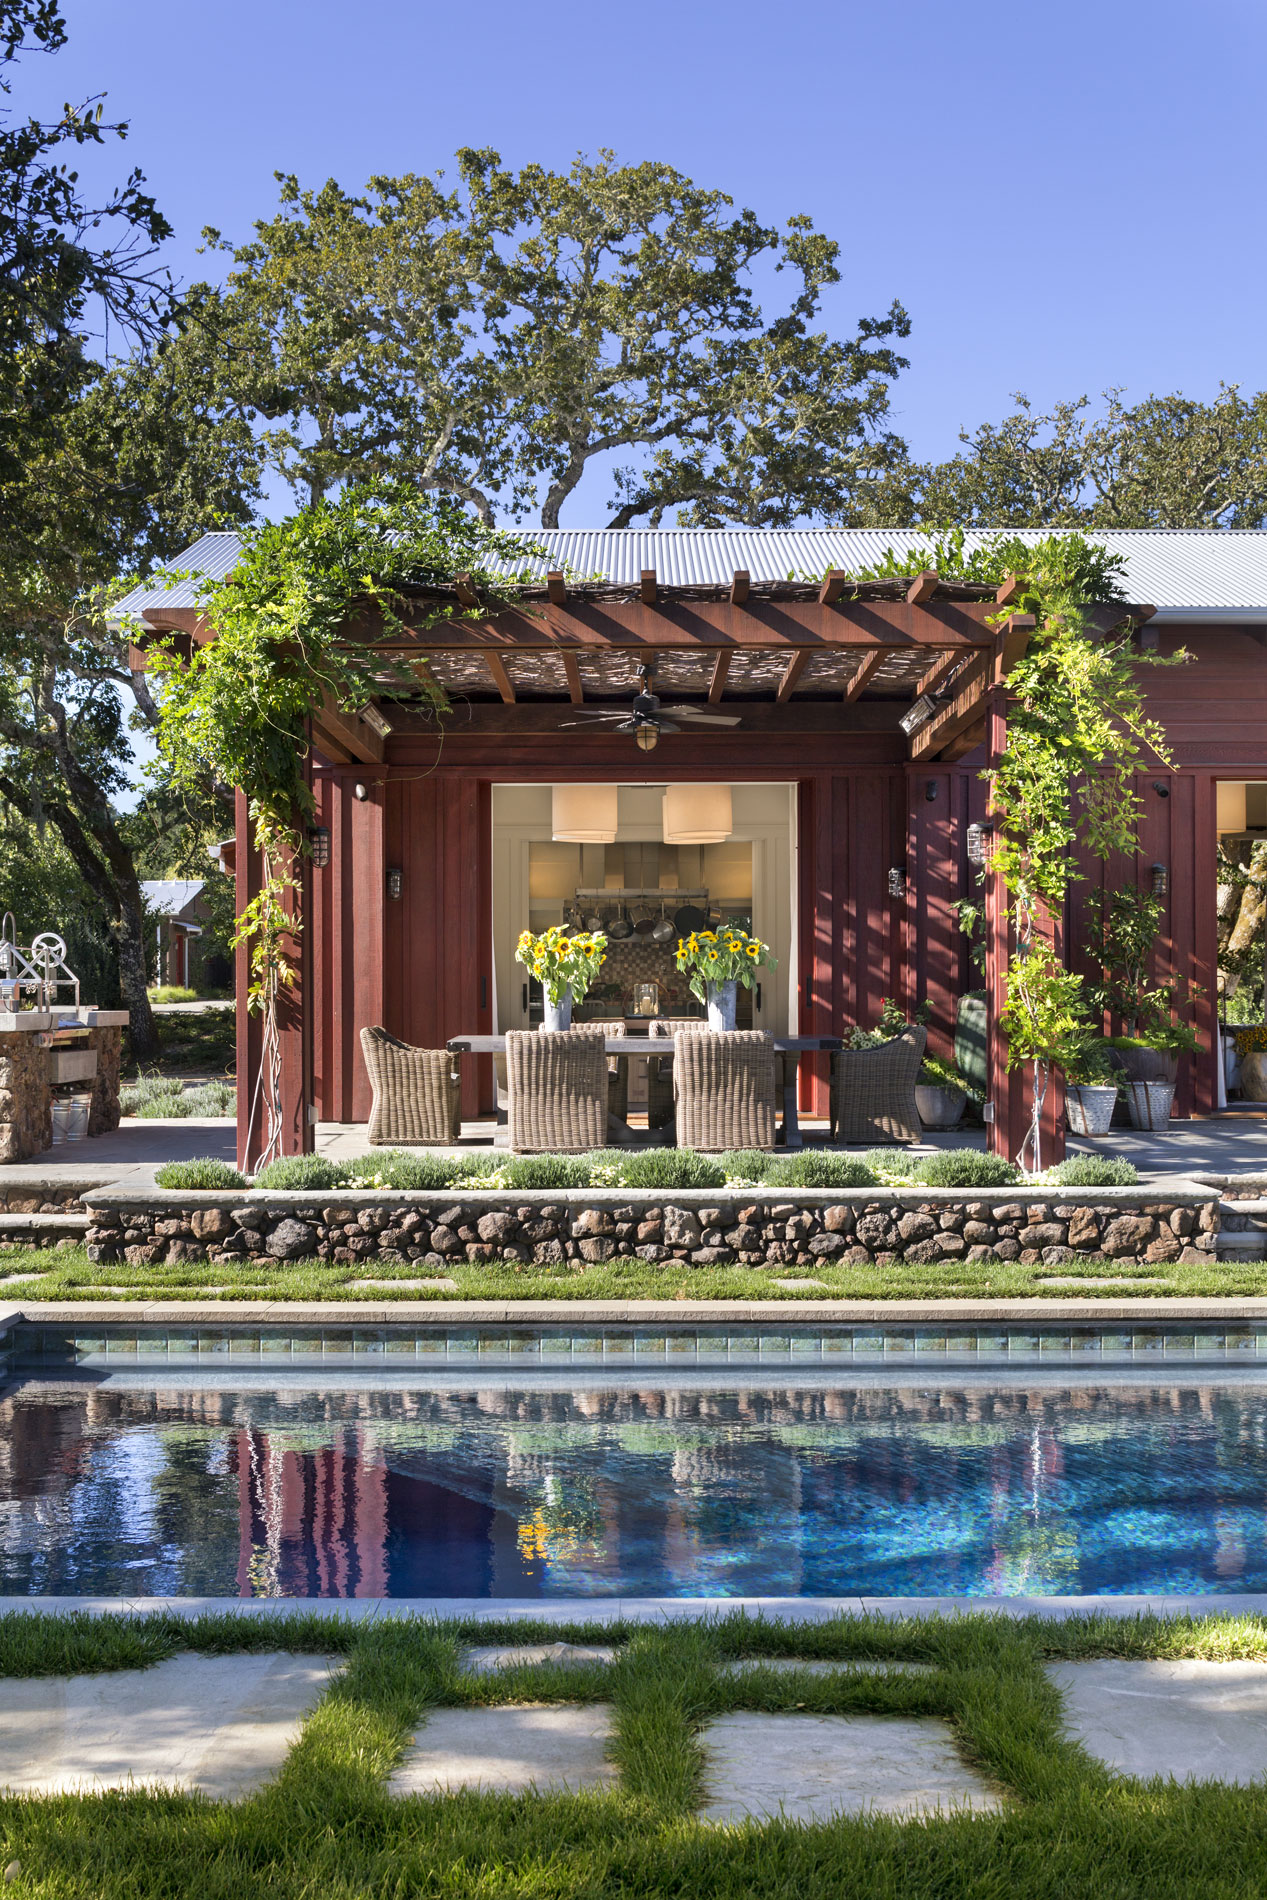 View of the wisteria-covered dining pergola across the pool. (Photo credit: Peter Aaron/OTTO for Robert A.M. Stern Architects)